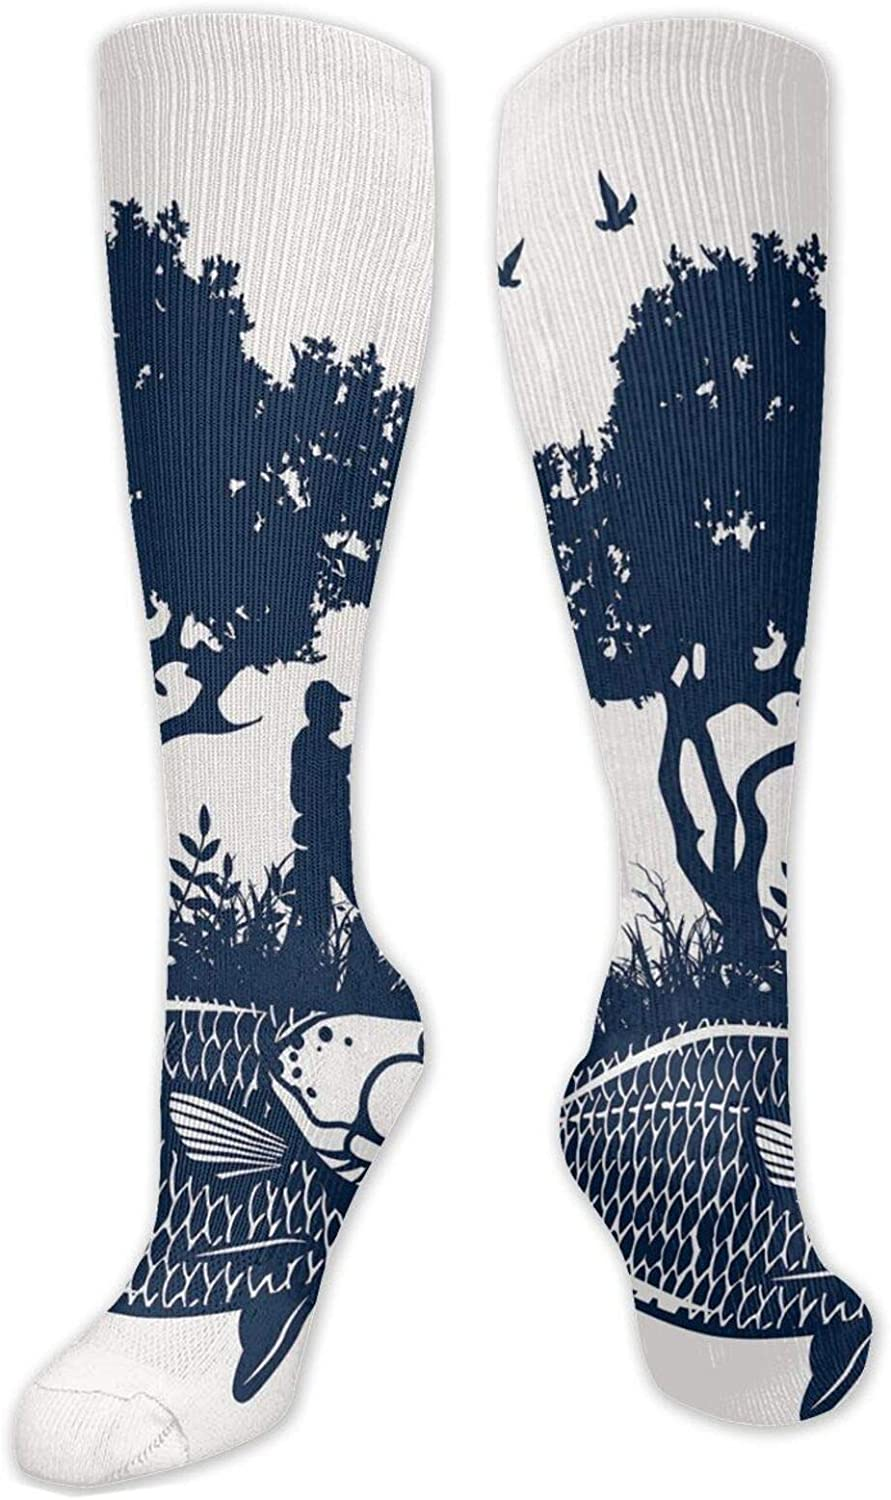 Compression High shopping Socks Abstract Graphic Bombing free shipping And Man Tree Of Silhouet